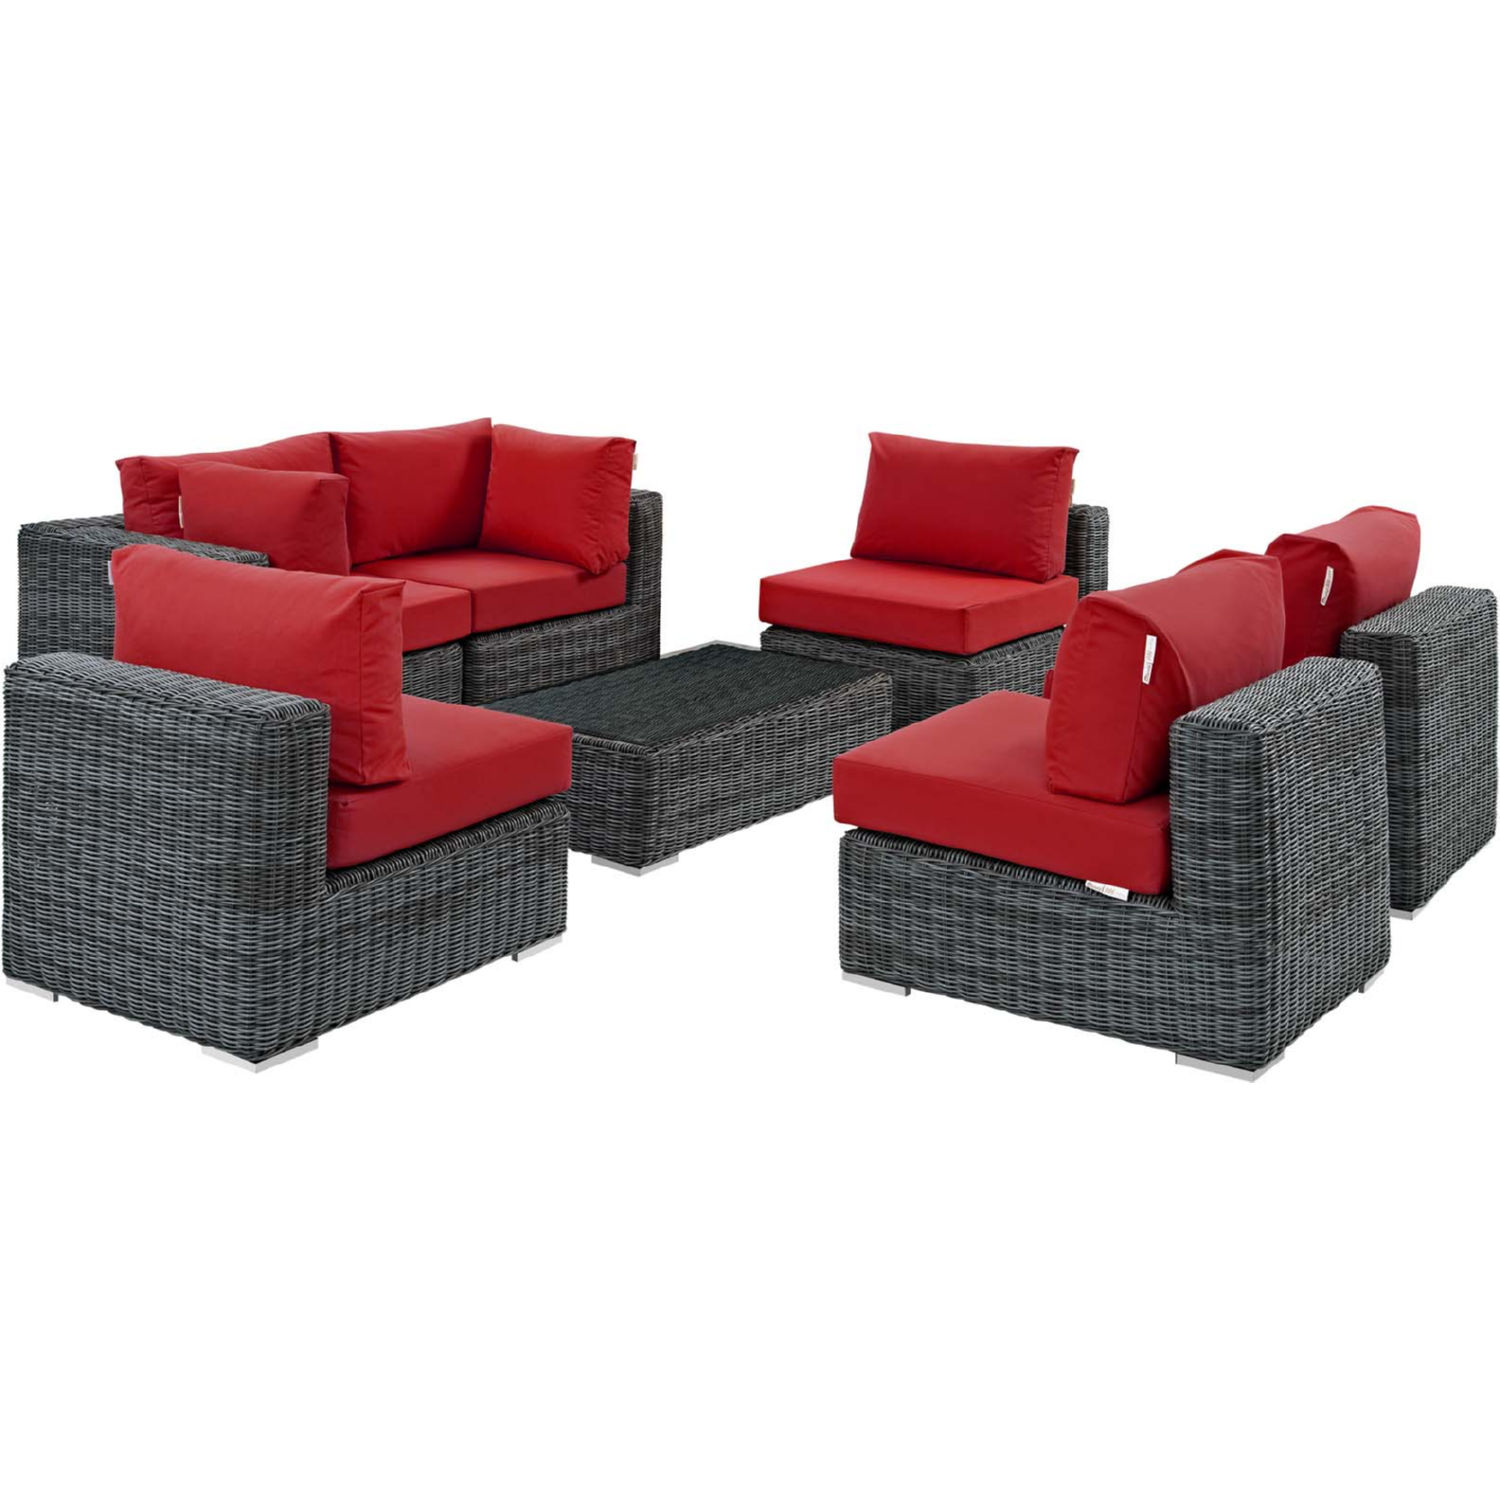 Fantastic Summon 7 Piece Outdoor Sectional Sofa Set In Pe Rattan Red Sunbrella By Modway Cjindustries Chair Design For Home Cjindustriesco